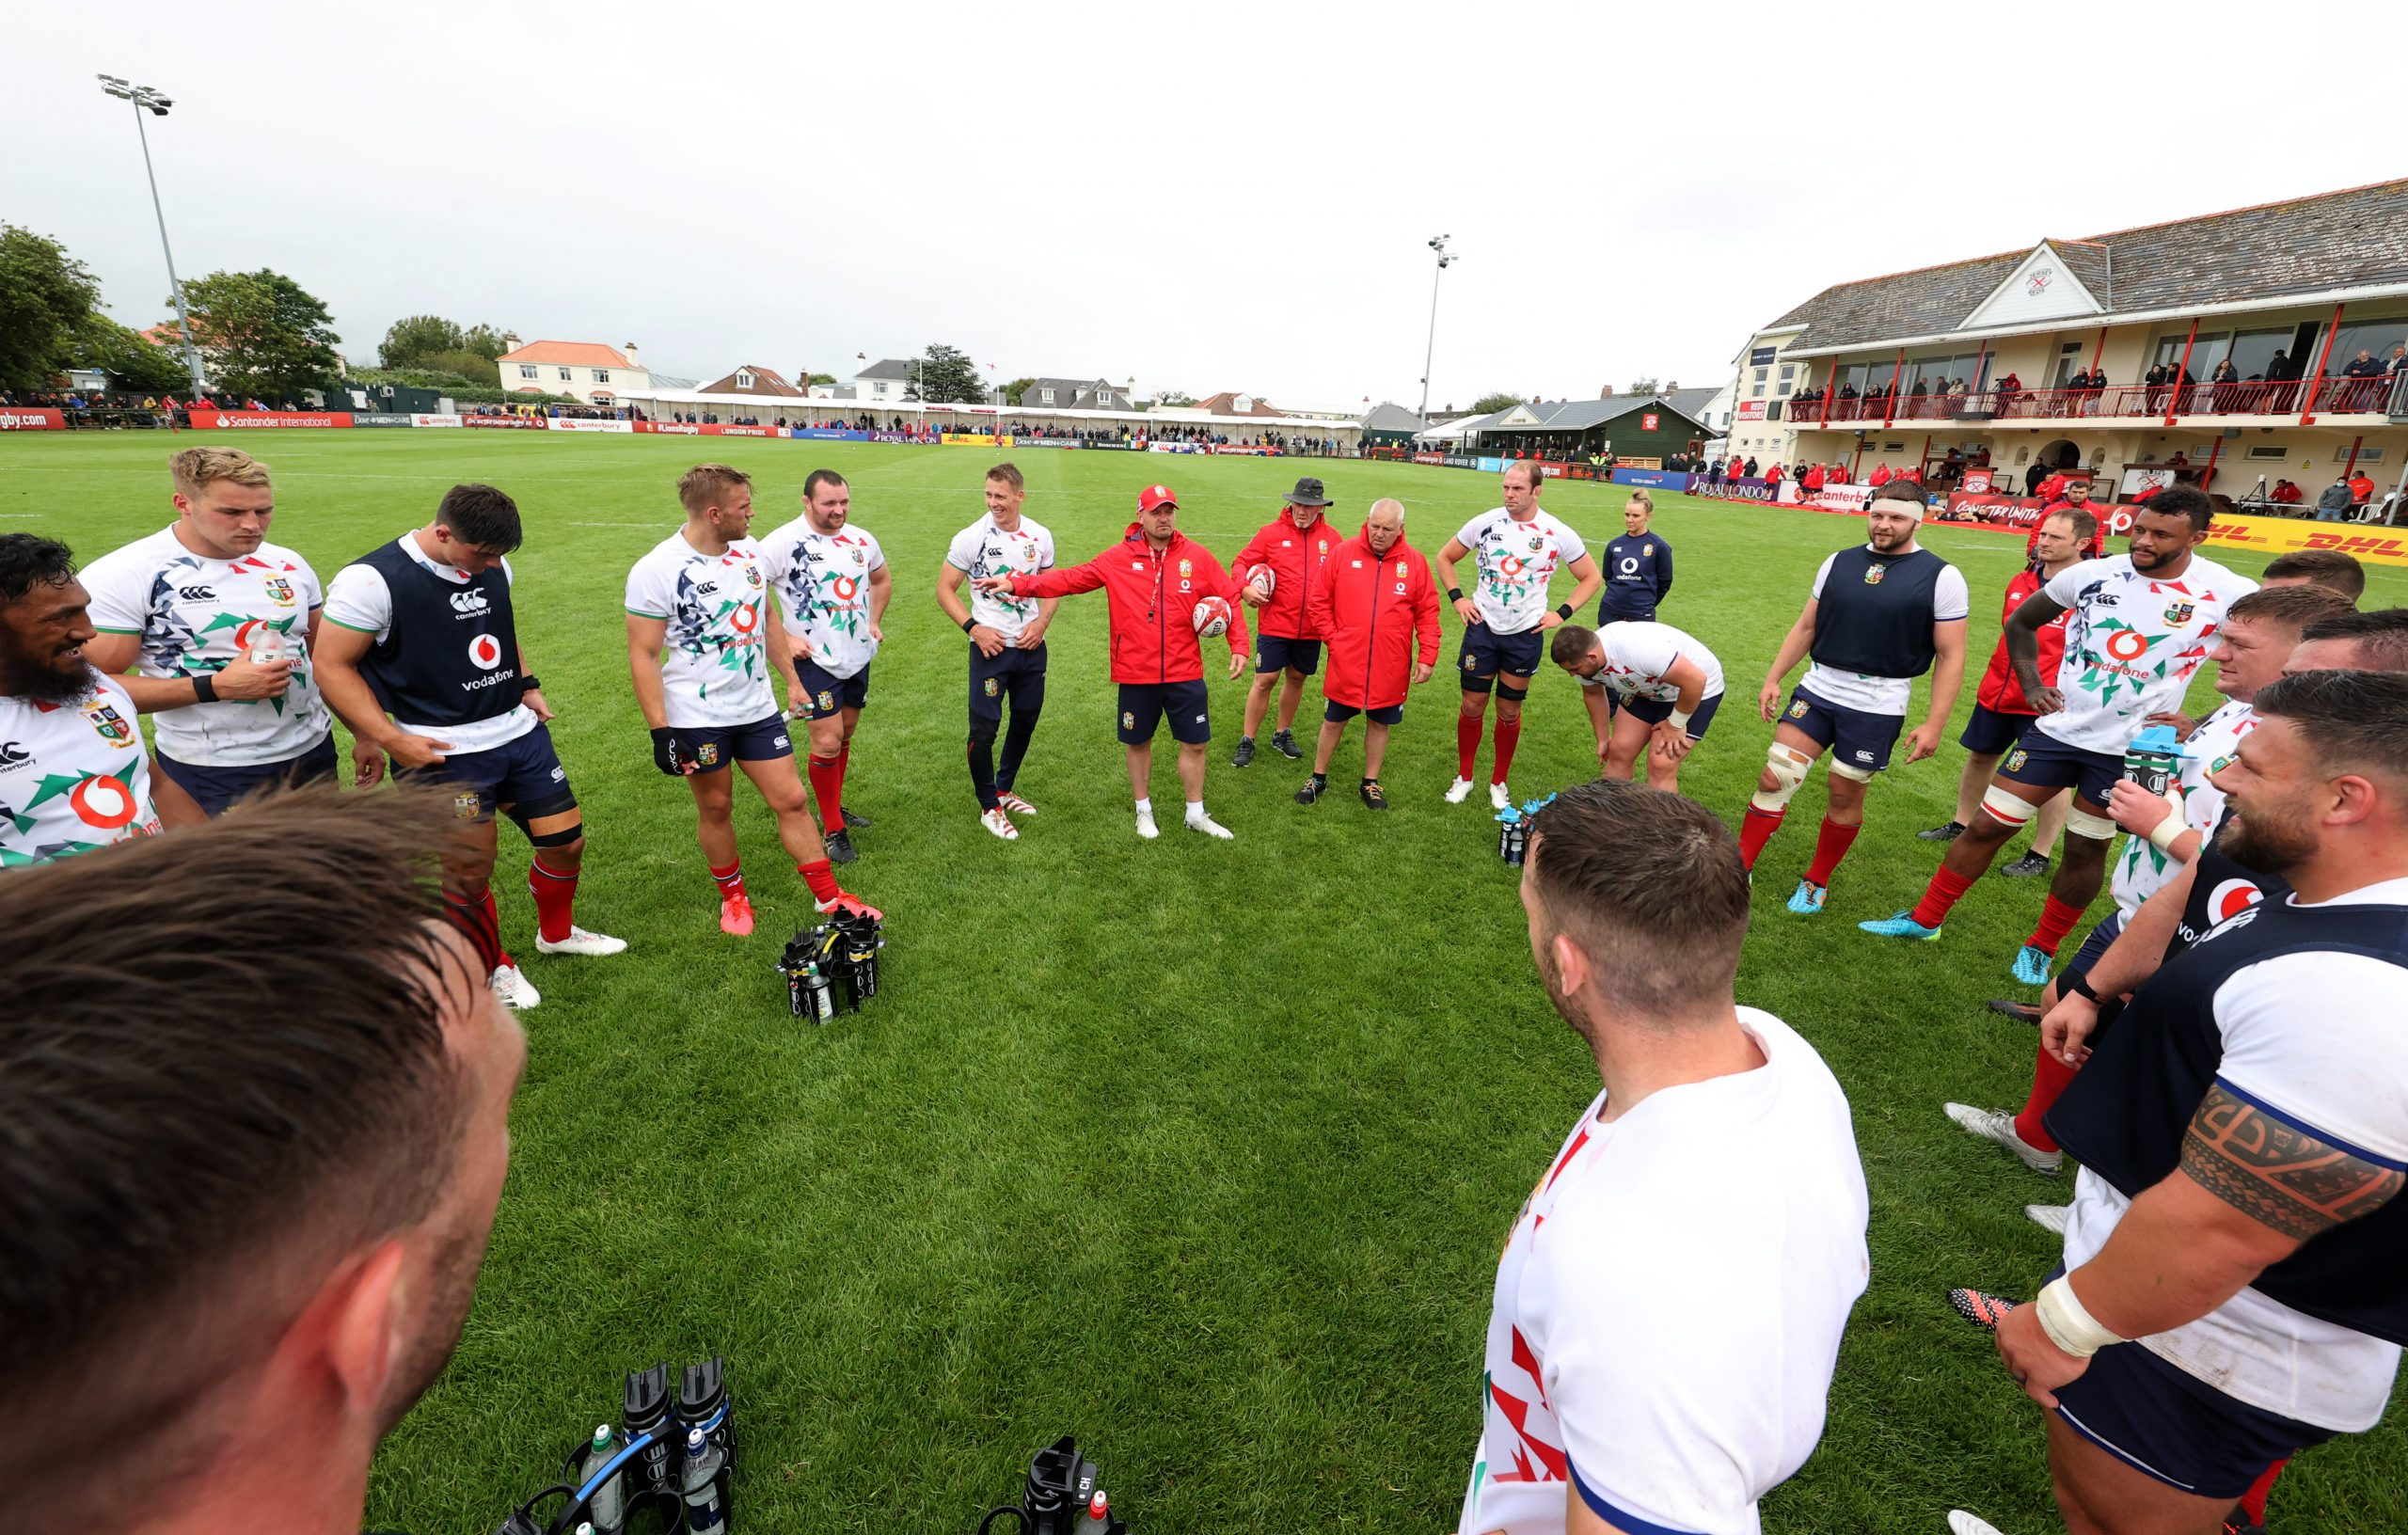 Lions players in a circle after a training session